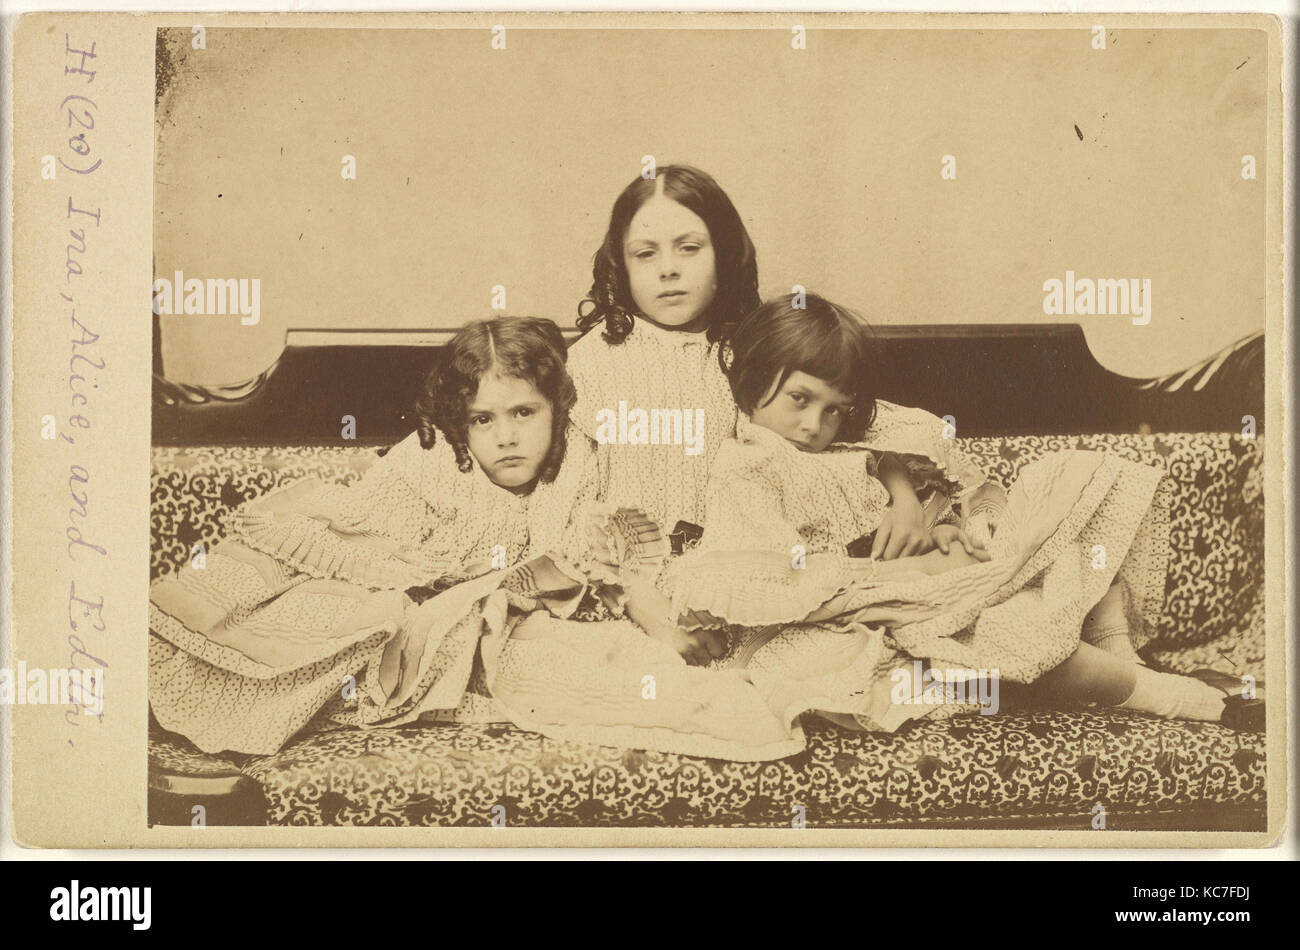 Edith, Ina and Alice Liddell on a Sofa, Lewis Carroll, Summer 1858 - Stock Image